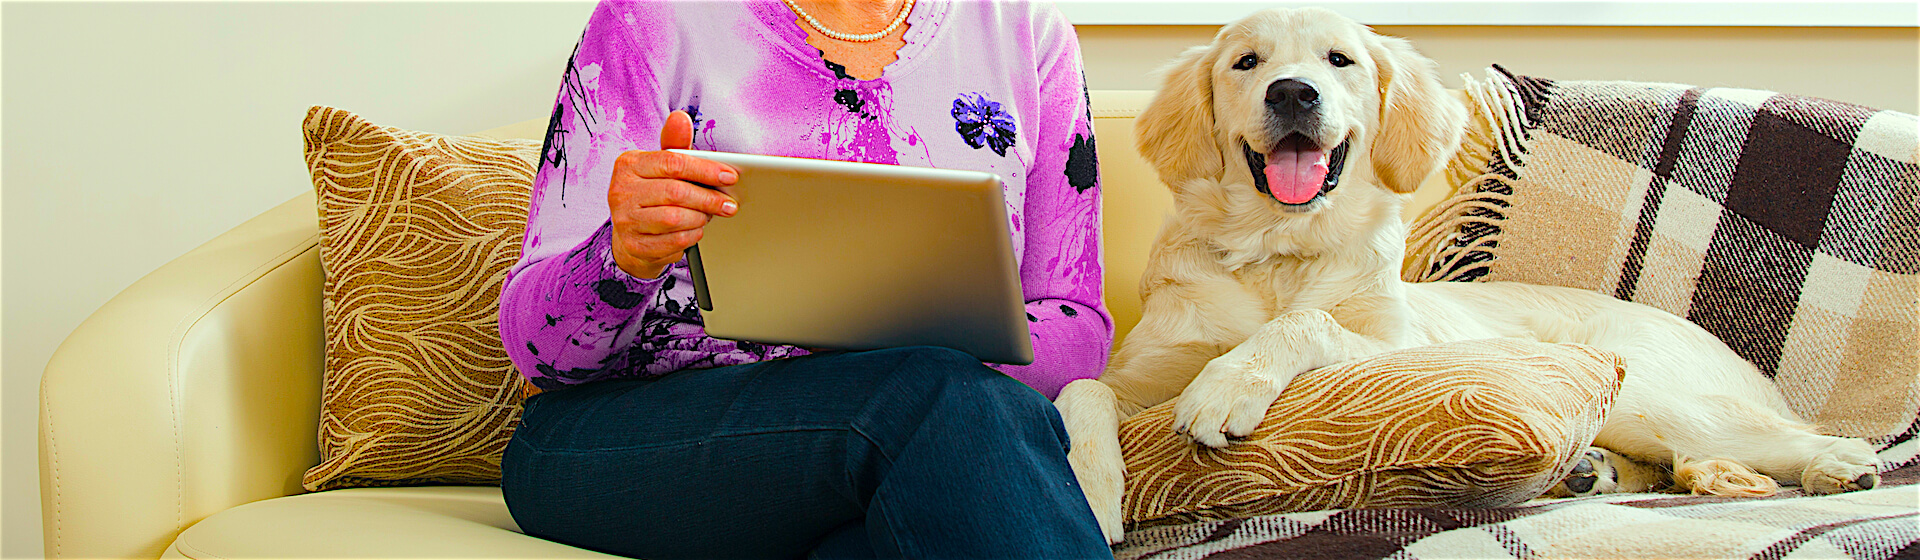 Shopping on couch with dog